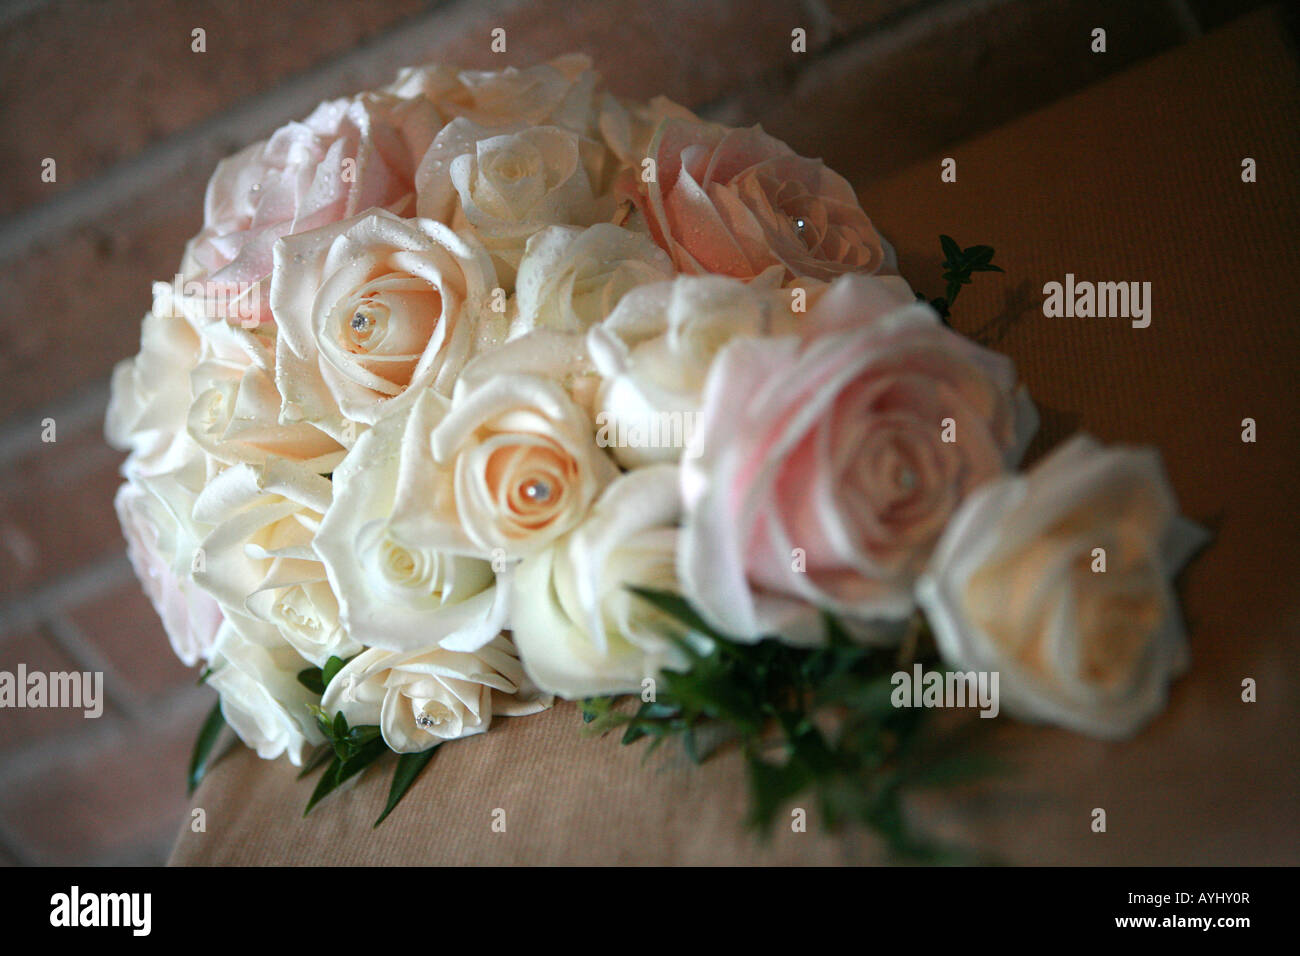 A Bridal Wedding Bouquet Of Soft Pastel Coloured Roses Flowers With Jewel Encrusted Centres Against Brown Red Building Bricks